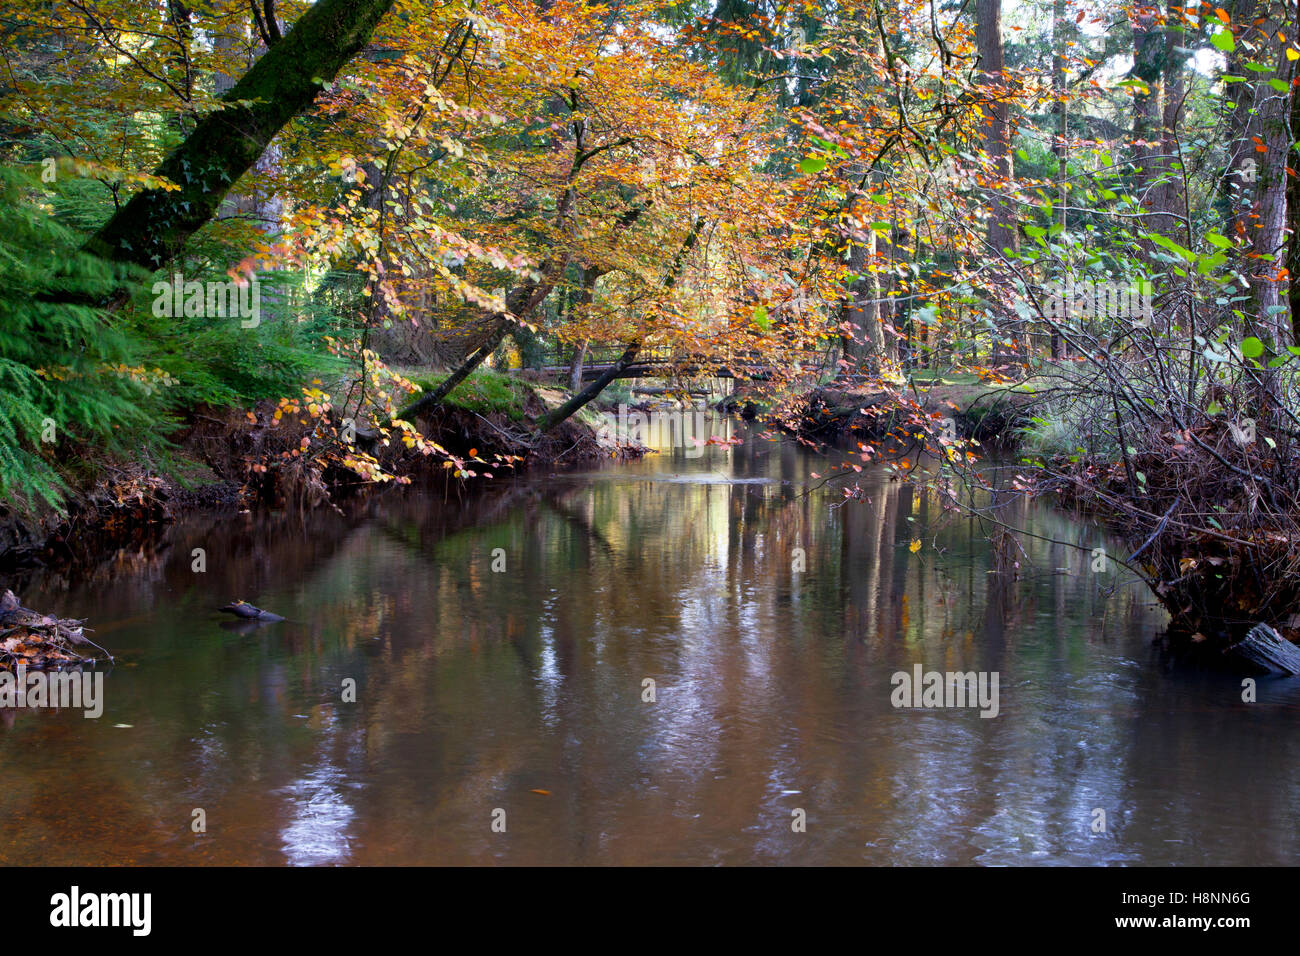 The Black Water stream near the Rhinefield Ornamental Drive in the New Forest, Hampshire, England. - Stock Image